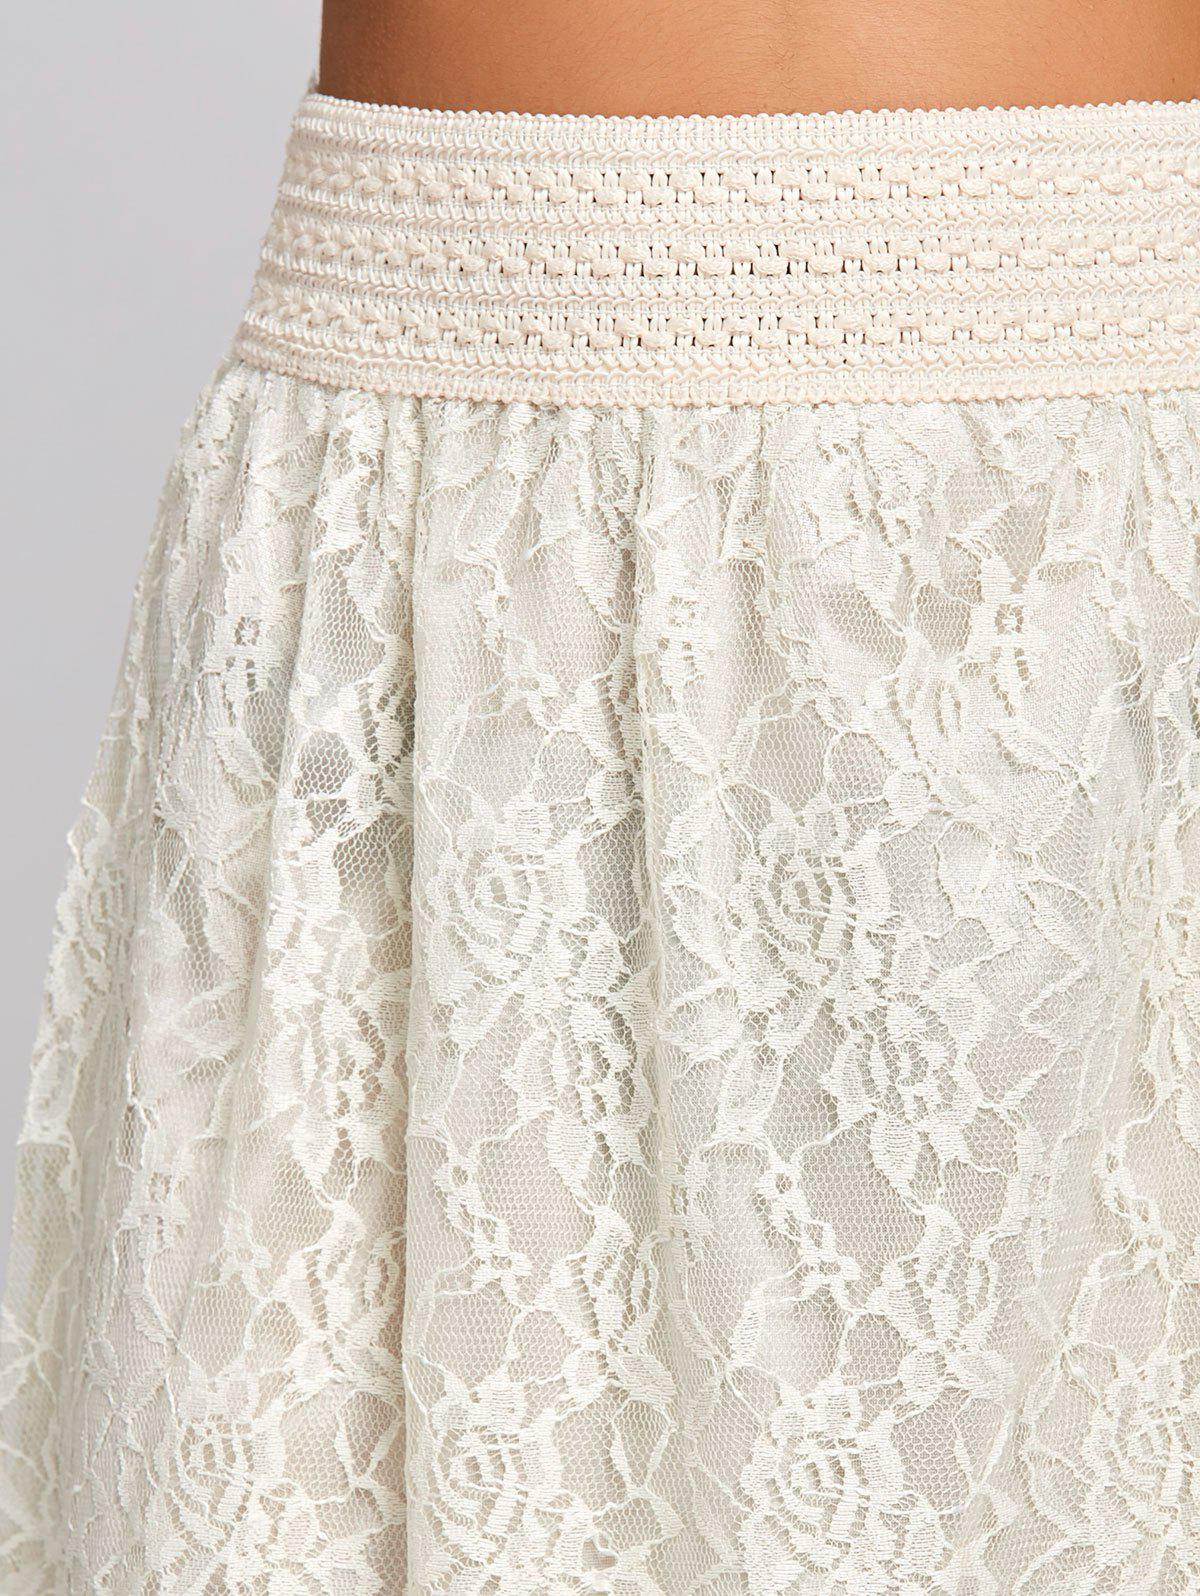 High Waist Lace Maxi Skirt - OFF WHITE L